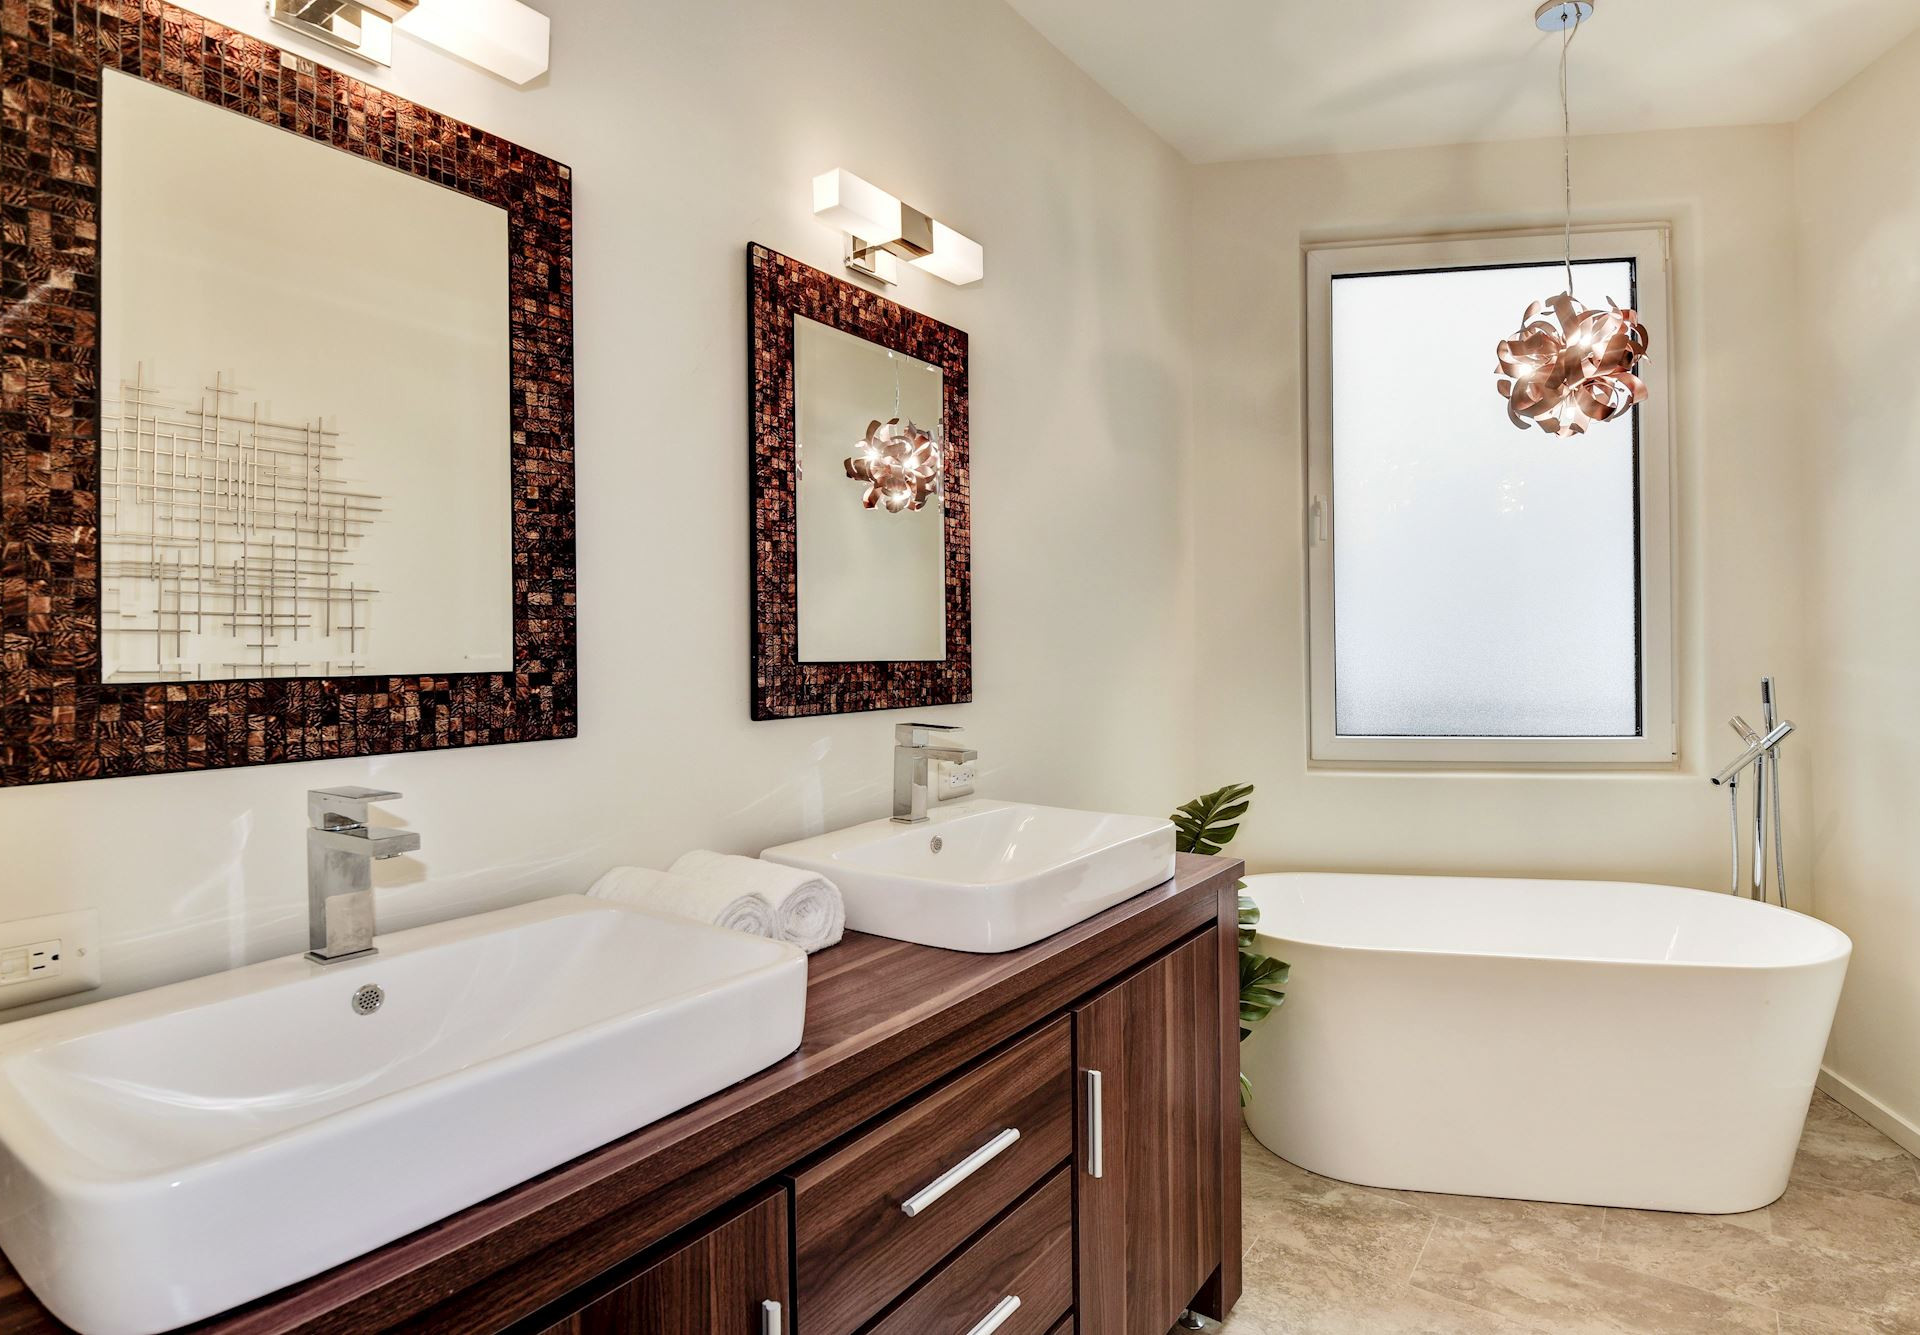 Penthouse owner's suite features soaking tubs